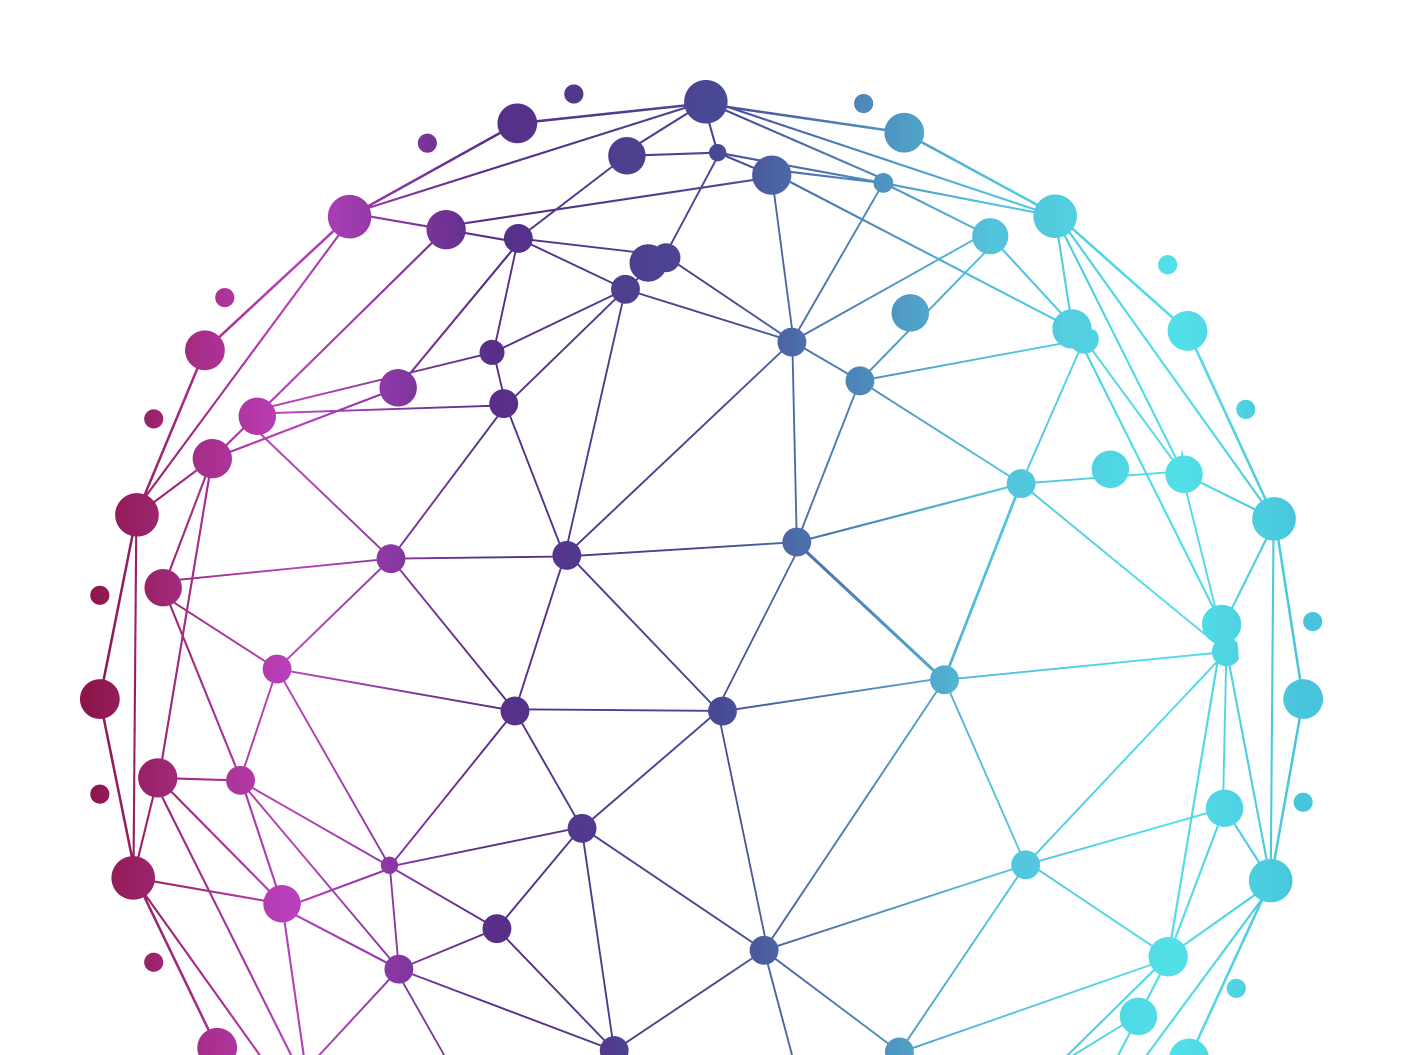 Transparent network. Wimedia networks get connected